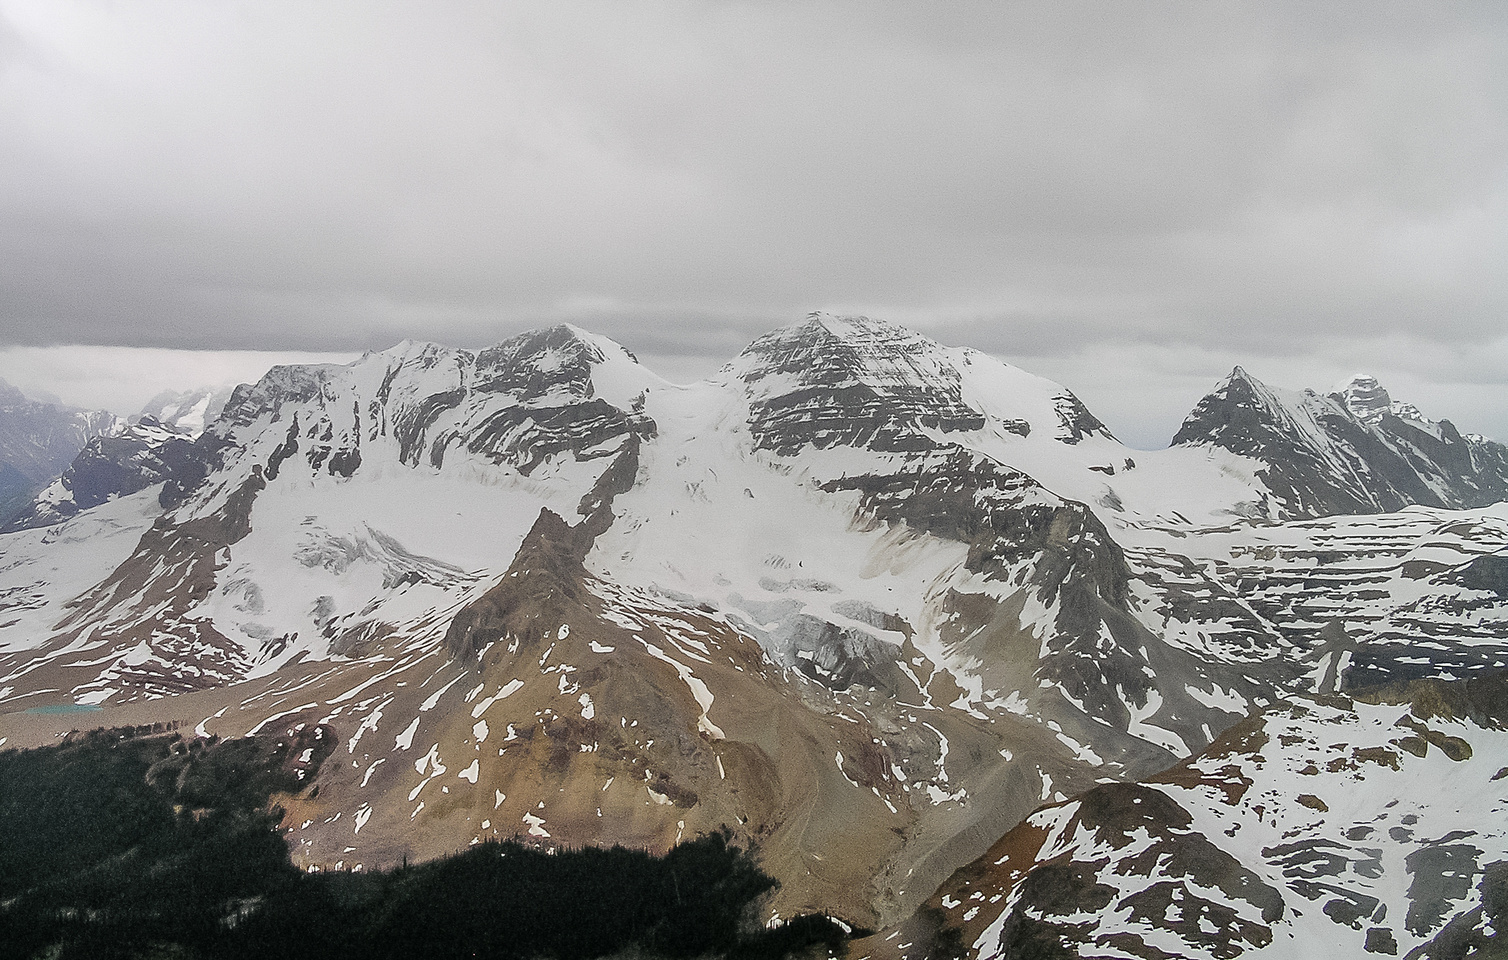 Views over the Little Yoho Valley towards the Presidents and Mount Marpole (R).